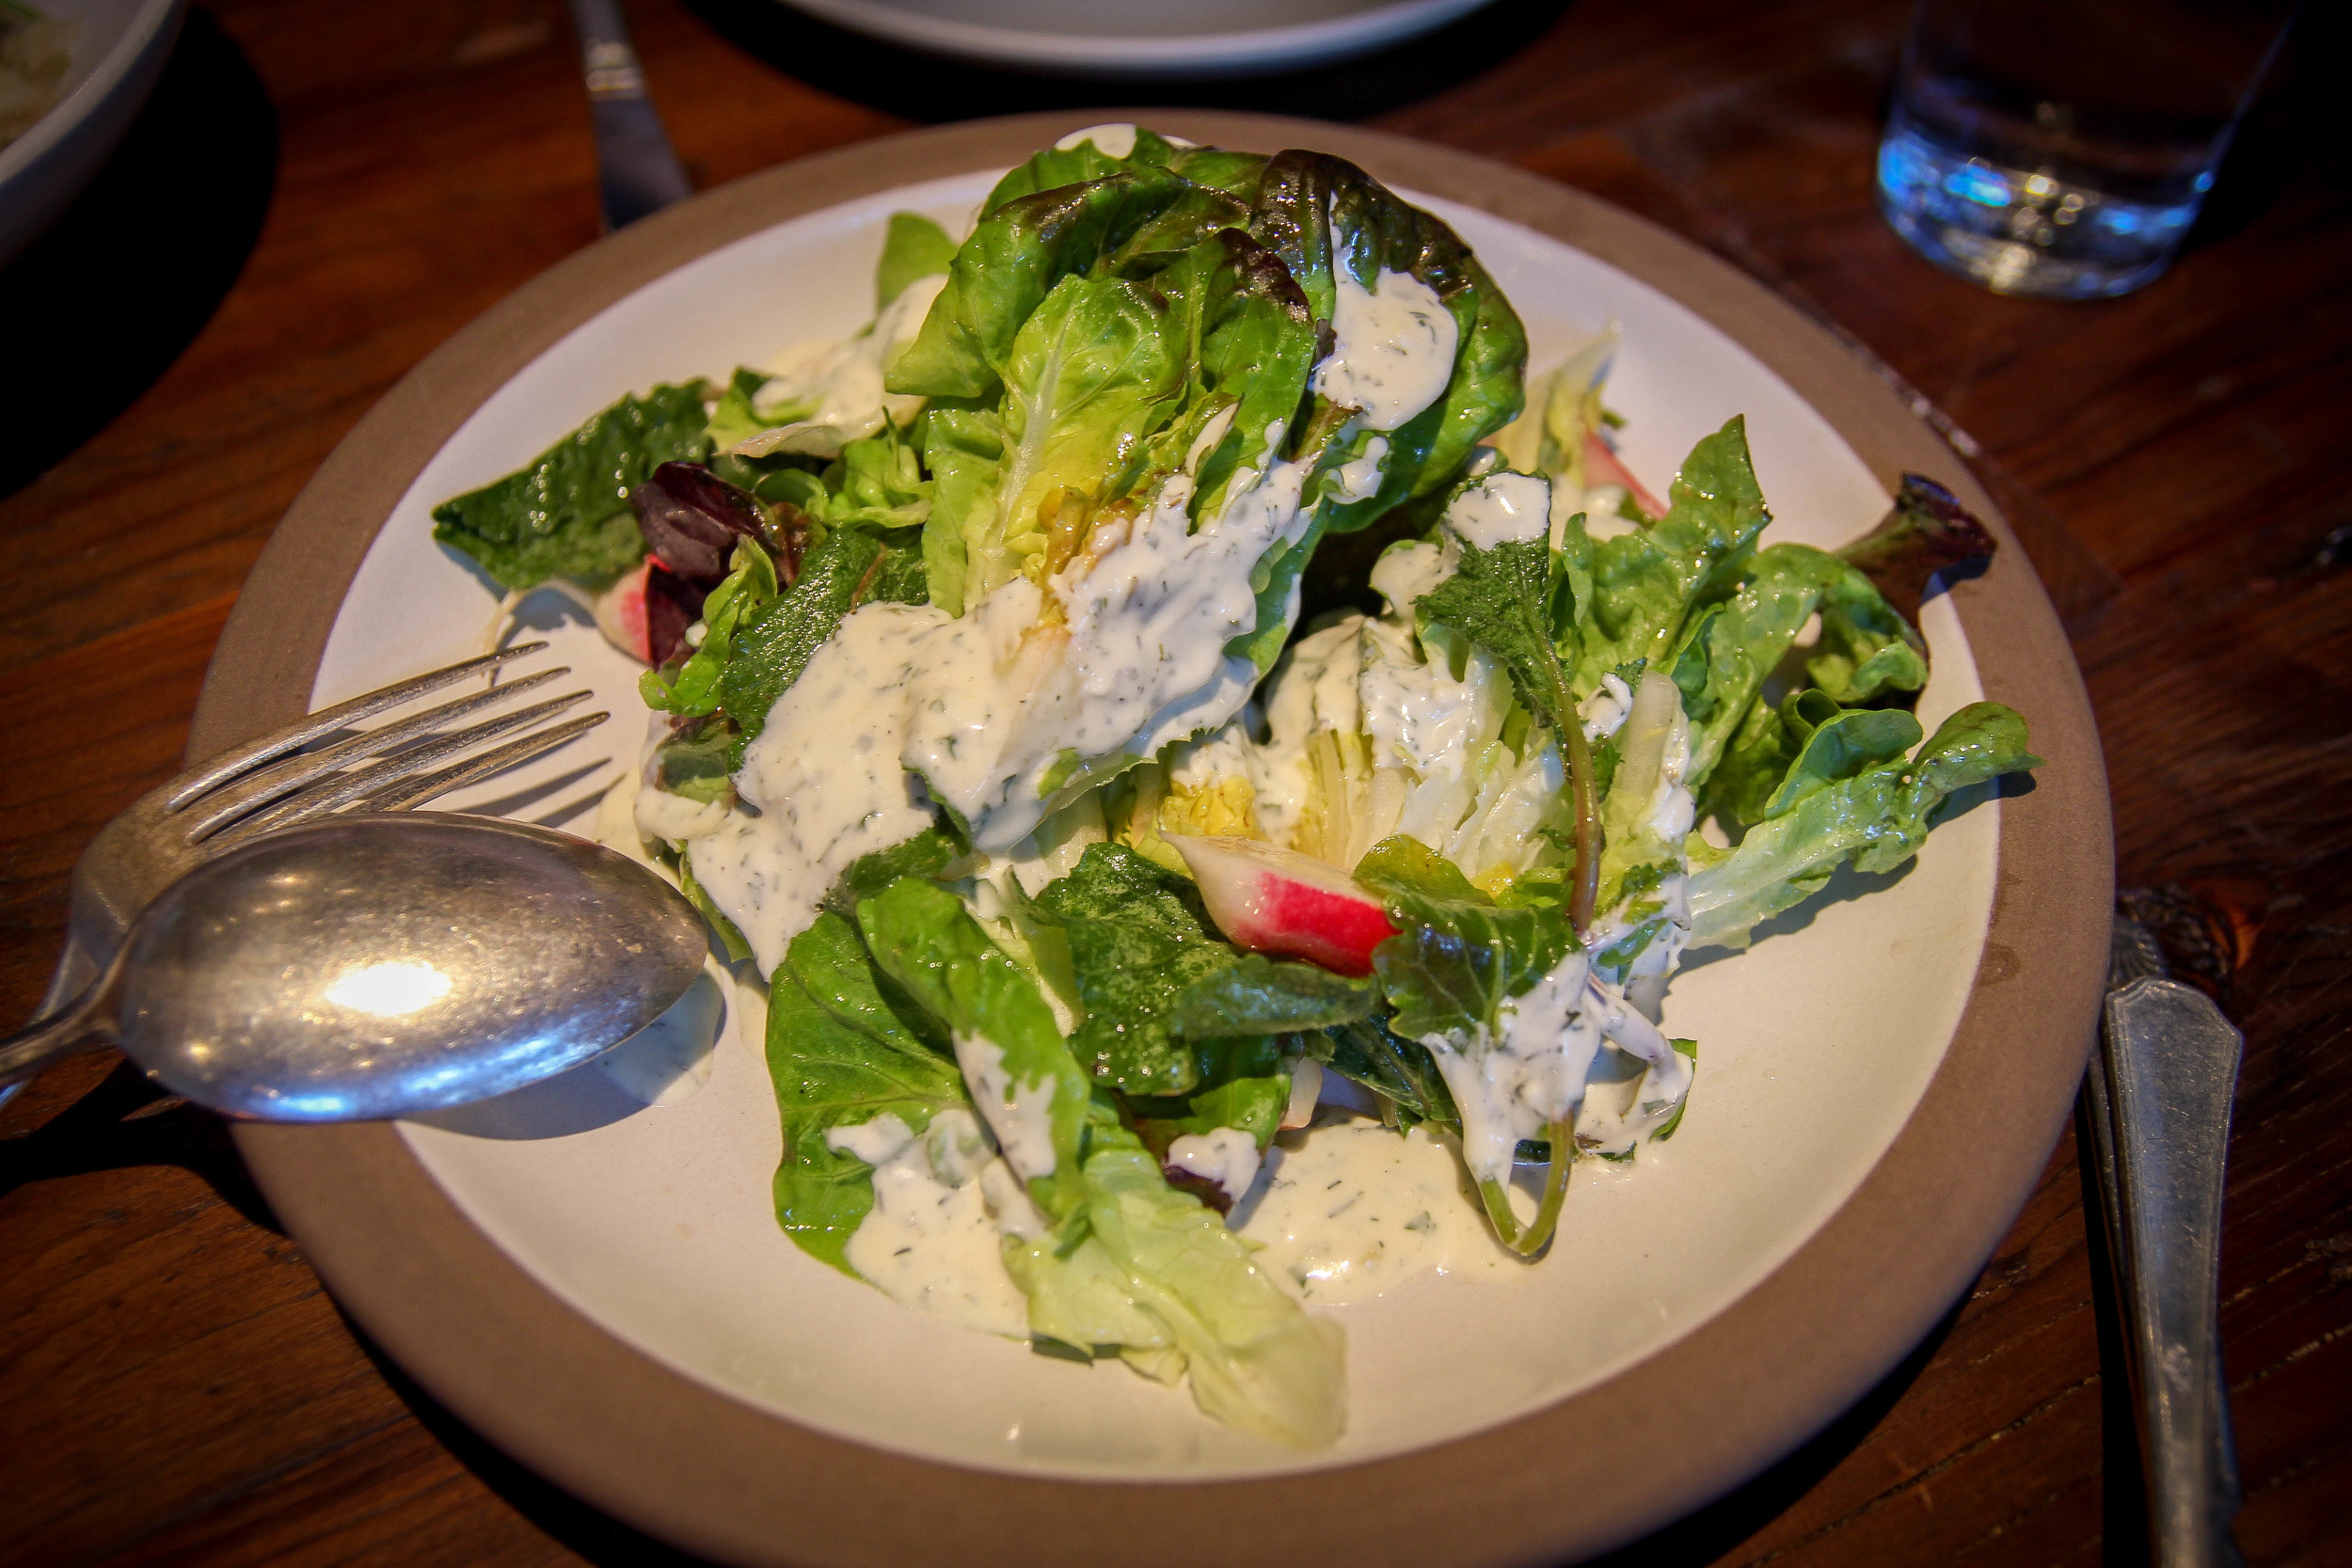 Gem lettuce salad with ramp'eh, radish, and croutons